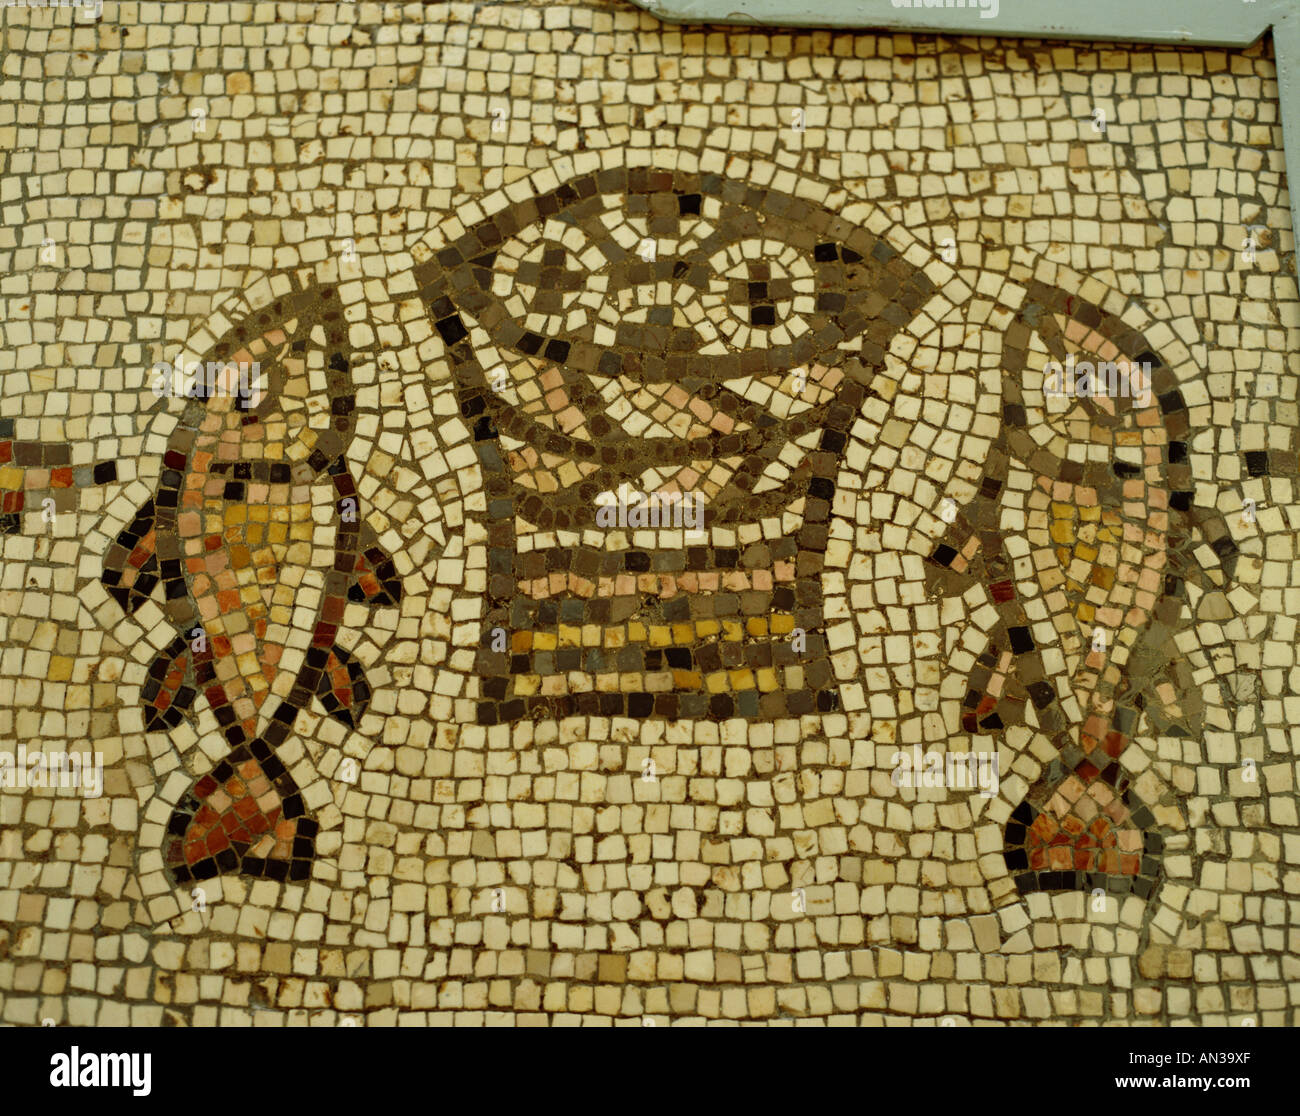 Church Of The Multiplication Mosaic Of The Loaves And The Fishes Stock Photo